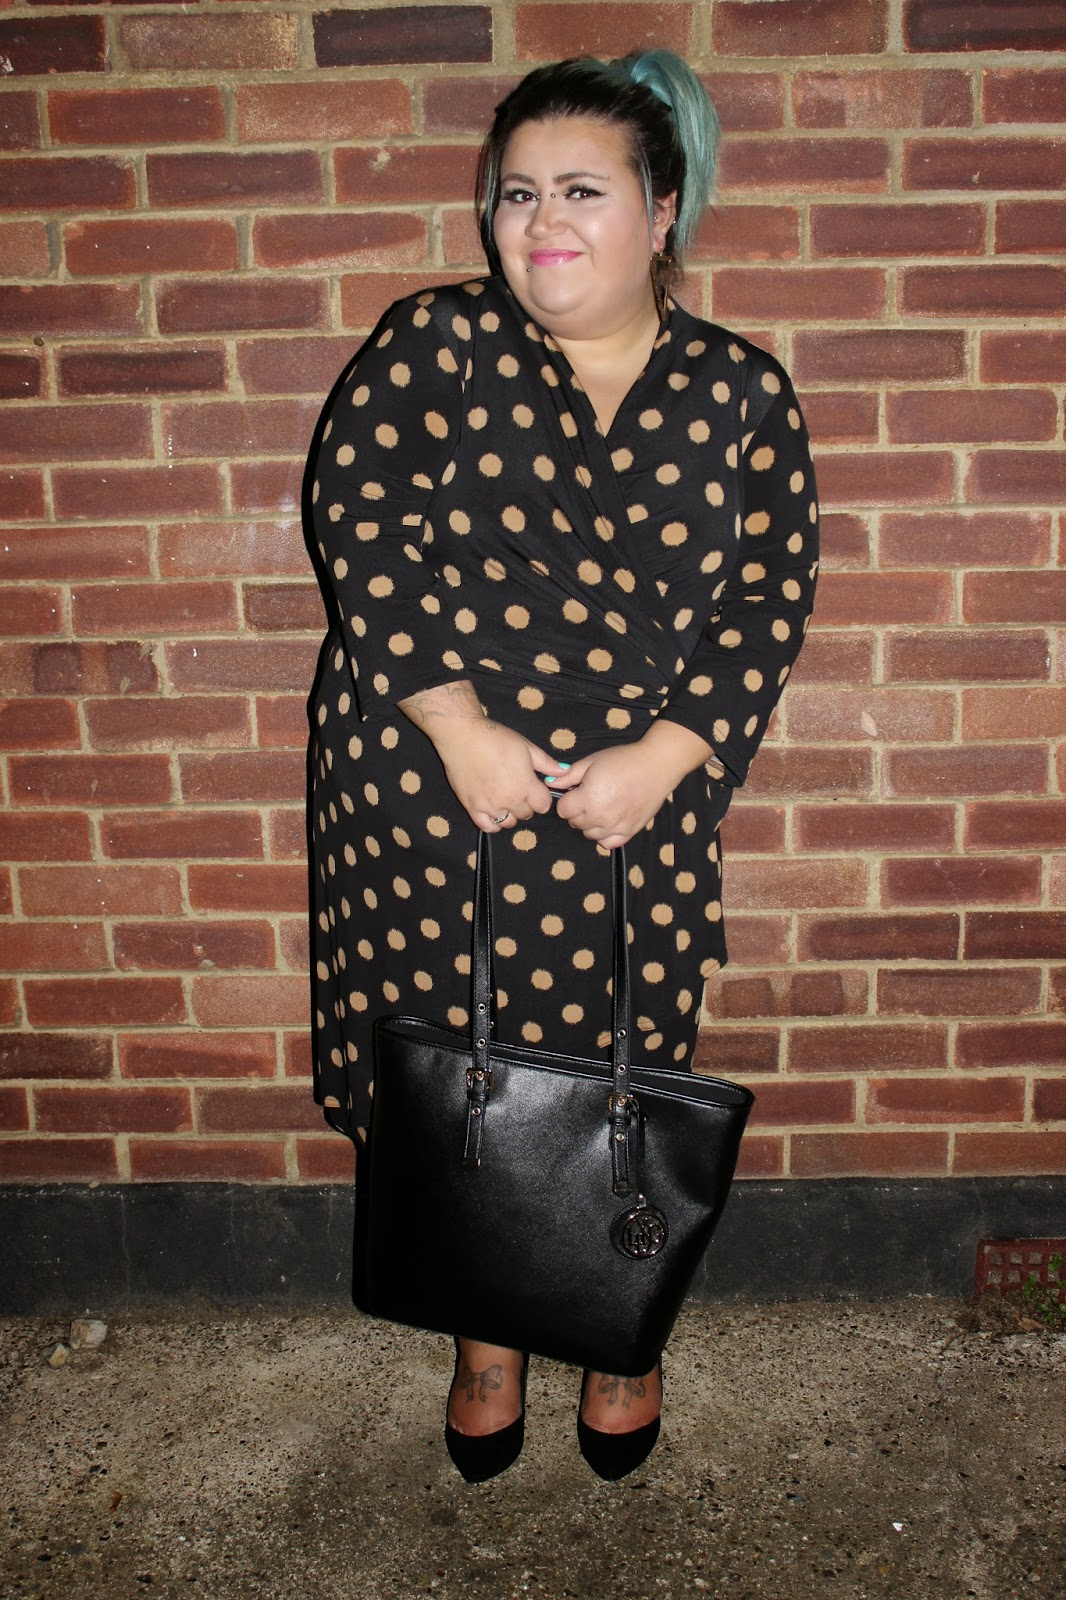 lorraine kelly, fashion , plus size, blogger, uk, fatbeautyx